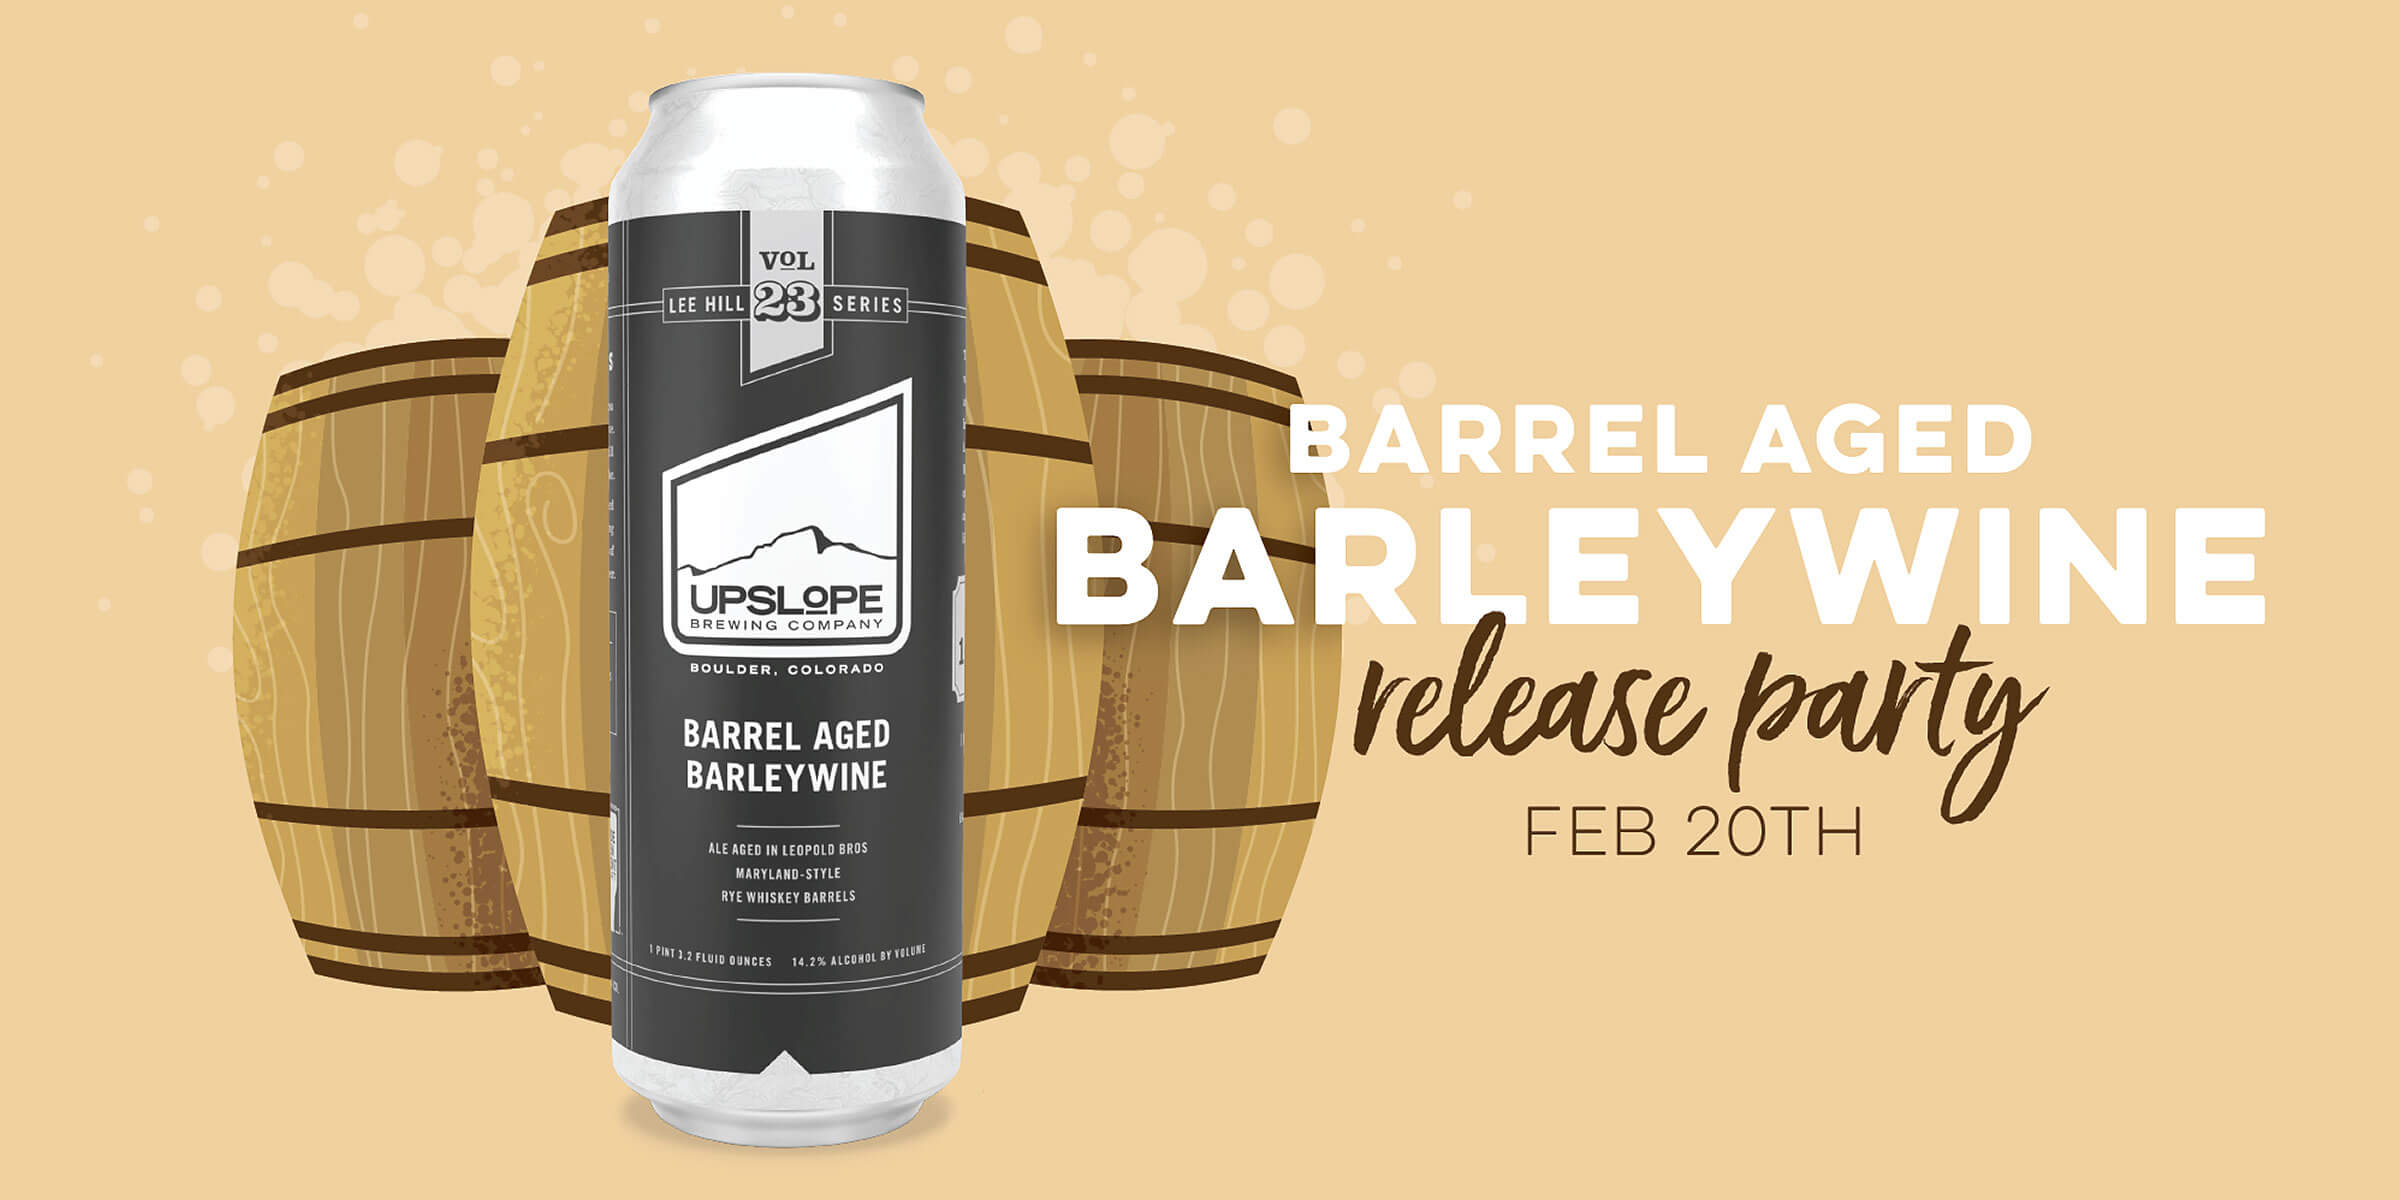 Upslope Brewing Company is releasing Volume 23 of their Lee Hill Series, a Barrel Aged Barleywine, an English-style Barleywine due out on February 20th.